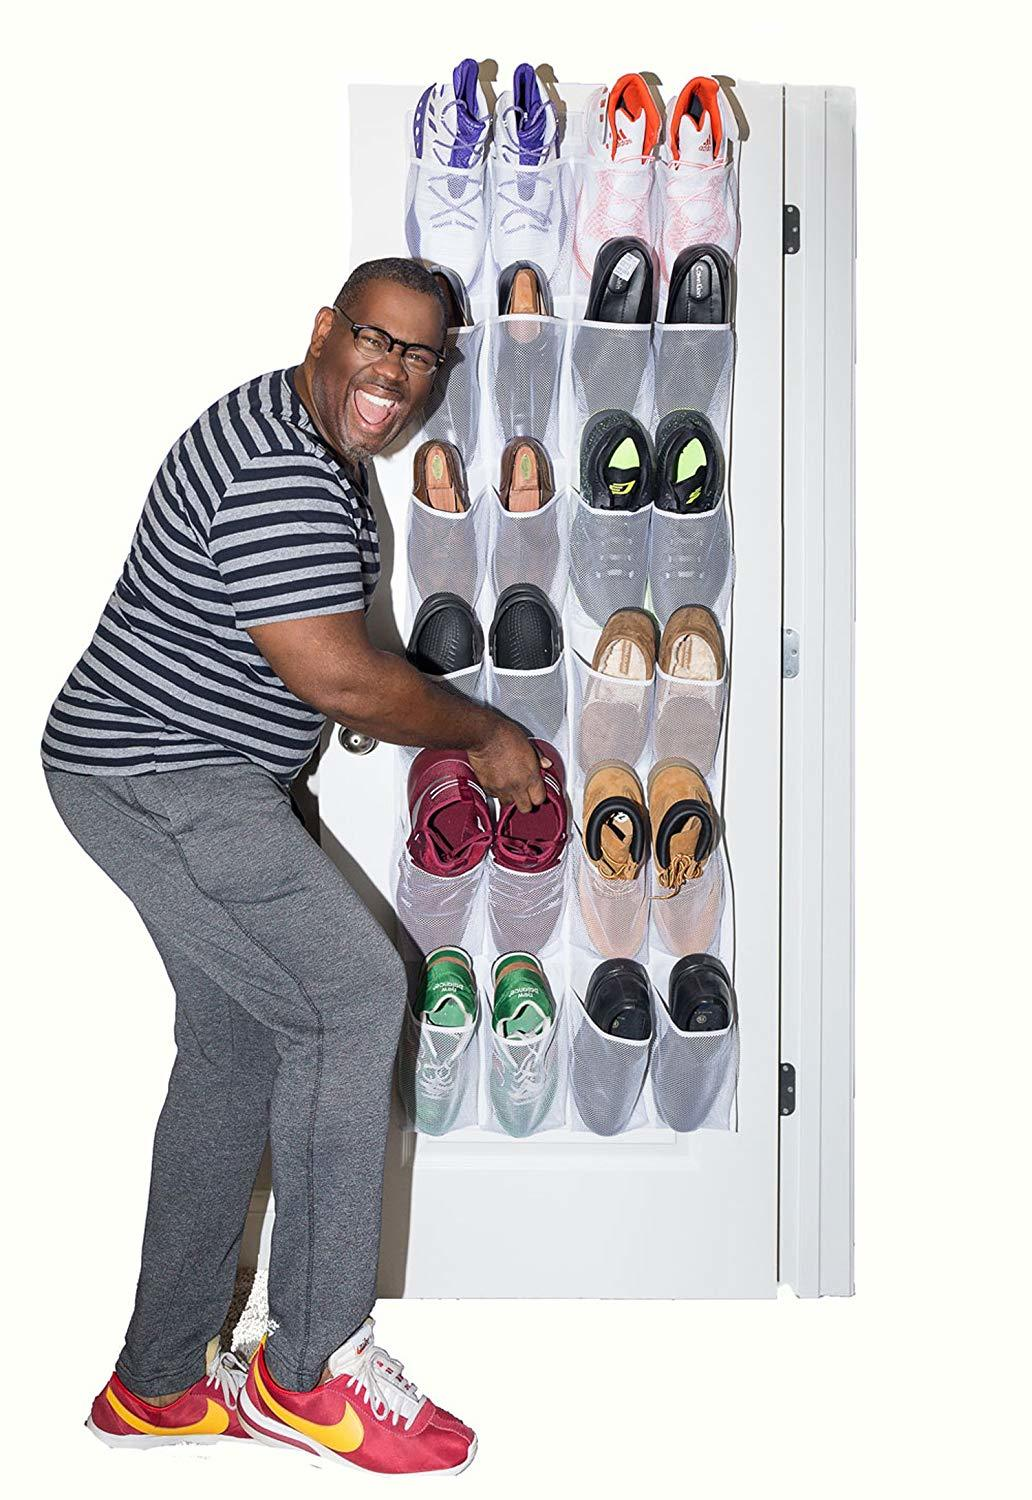 shoe storage hacks this hanging closet shoe organizer & entryway organizer is great for sneaker storage and keeping dorms, kitchens, bedroom tidy with no effort